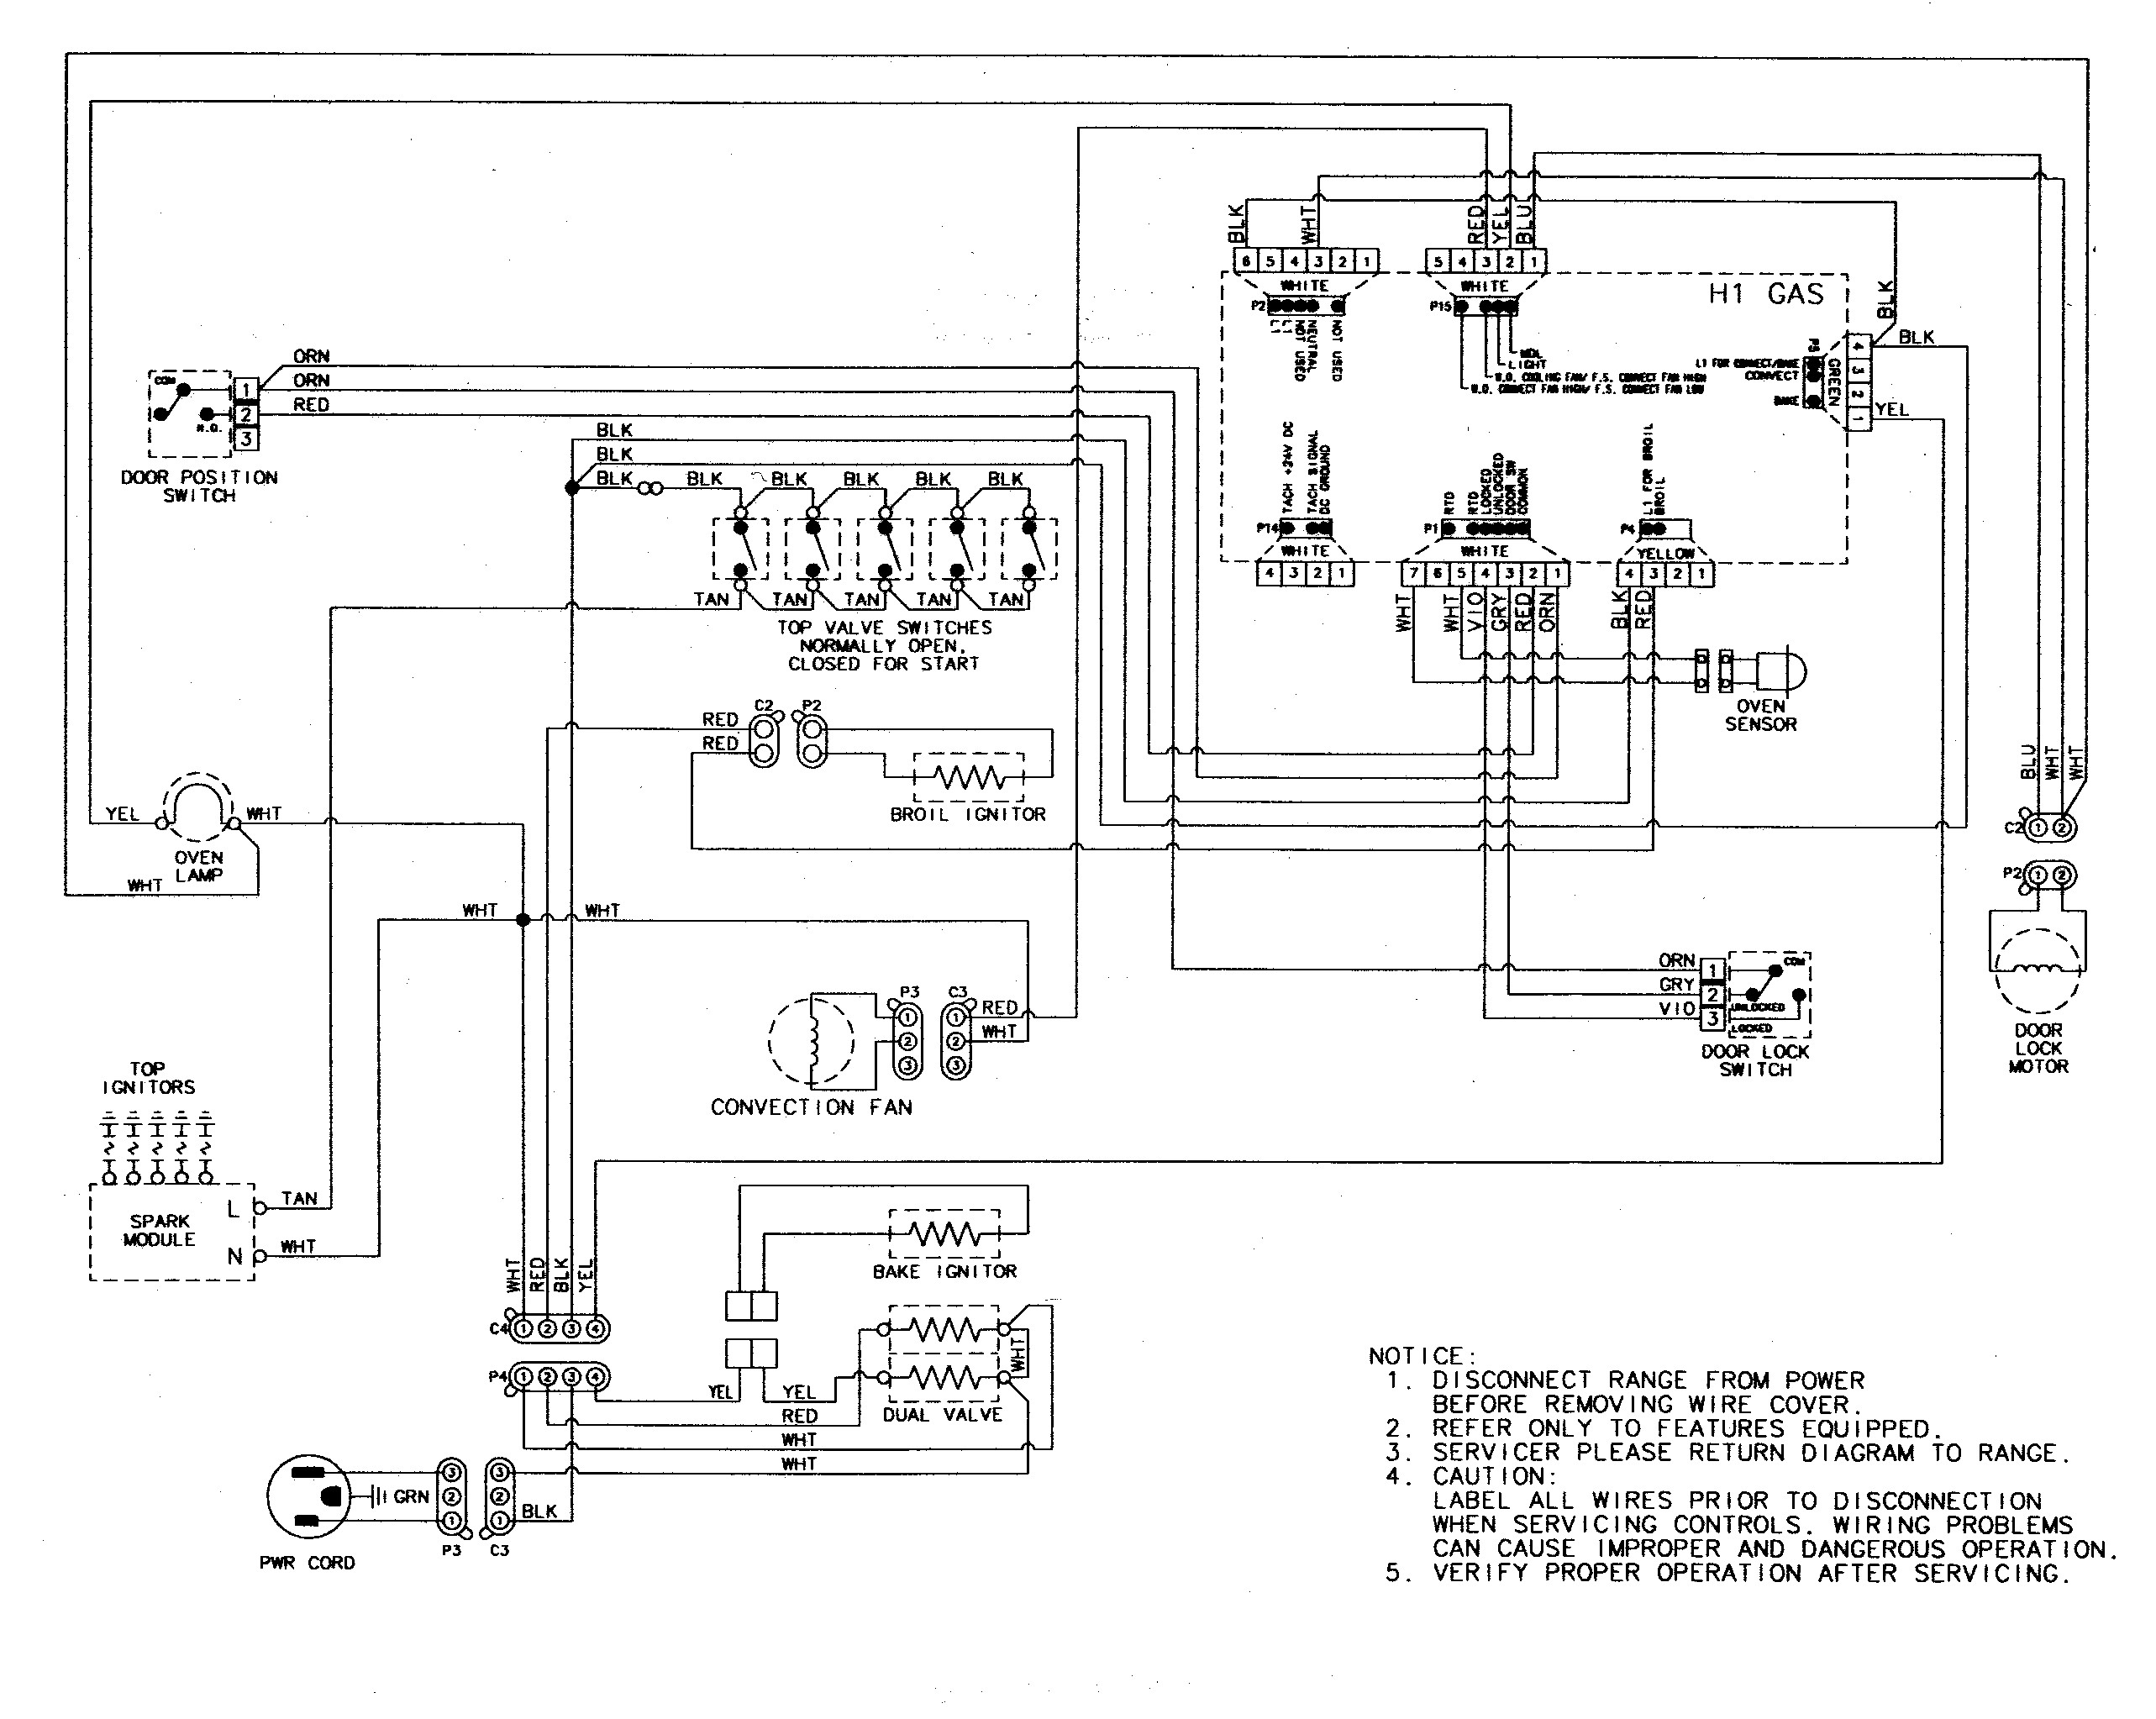 Wiring Diagram Whirlpool Gas Dryer Schematic For Simple Electric Range